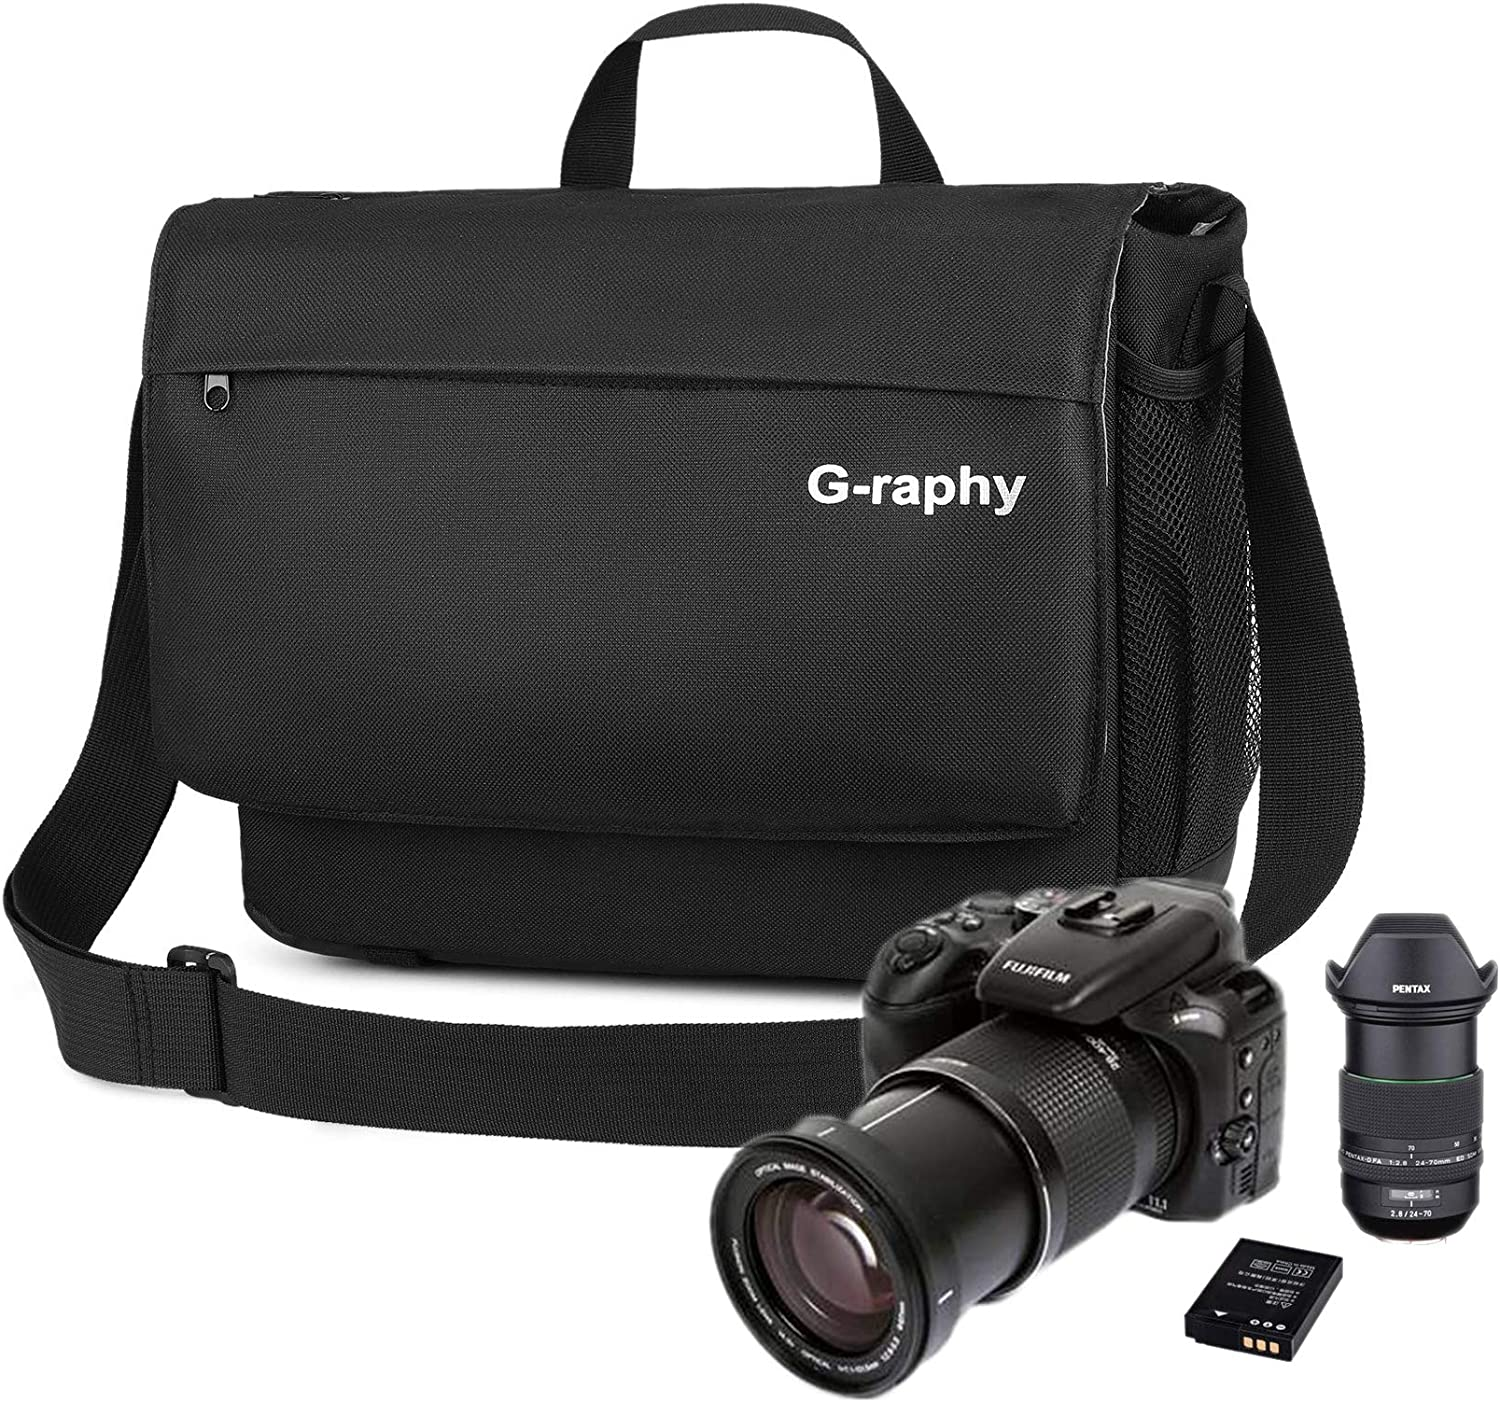 G-raphy Camera Shoulder Bag for SLR/DSLR Digital Cameras 14inch Laptop Canvas Messenger Bag with Camera Insert Sleeve